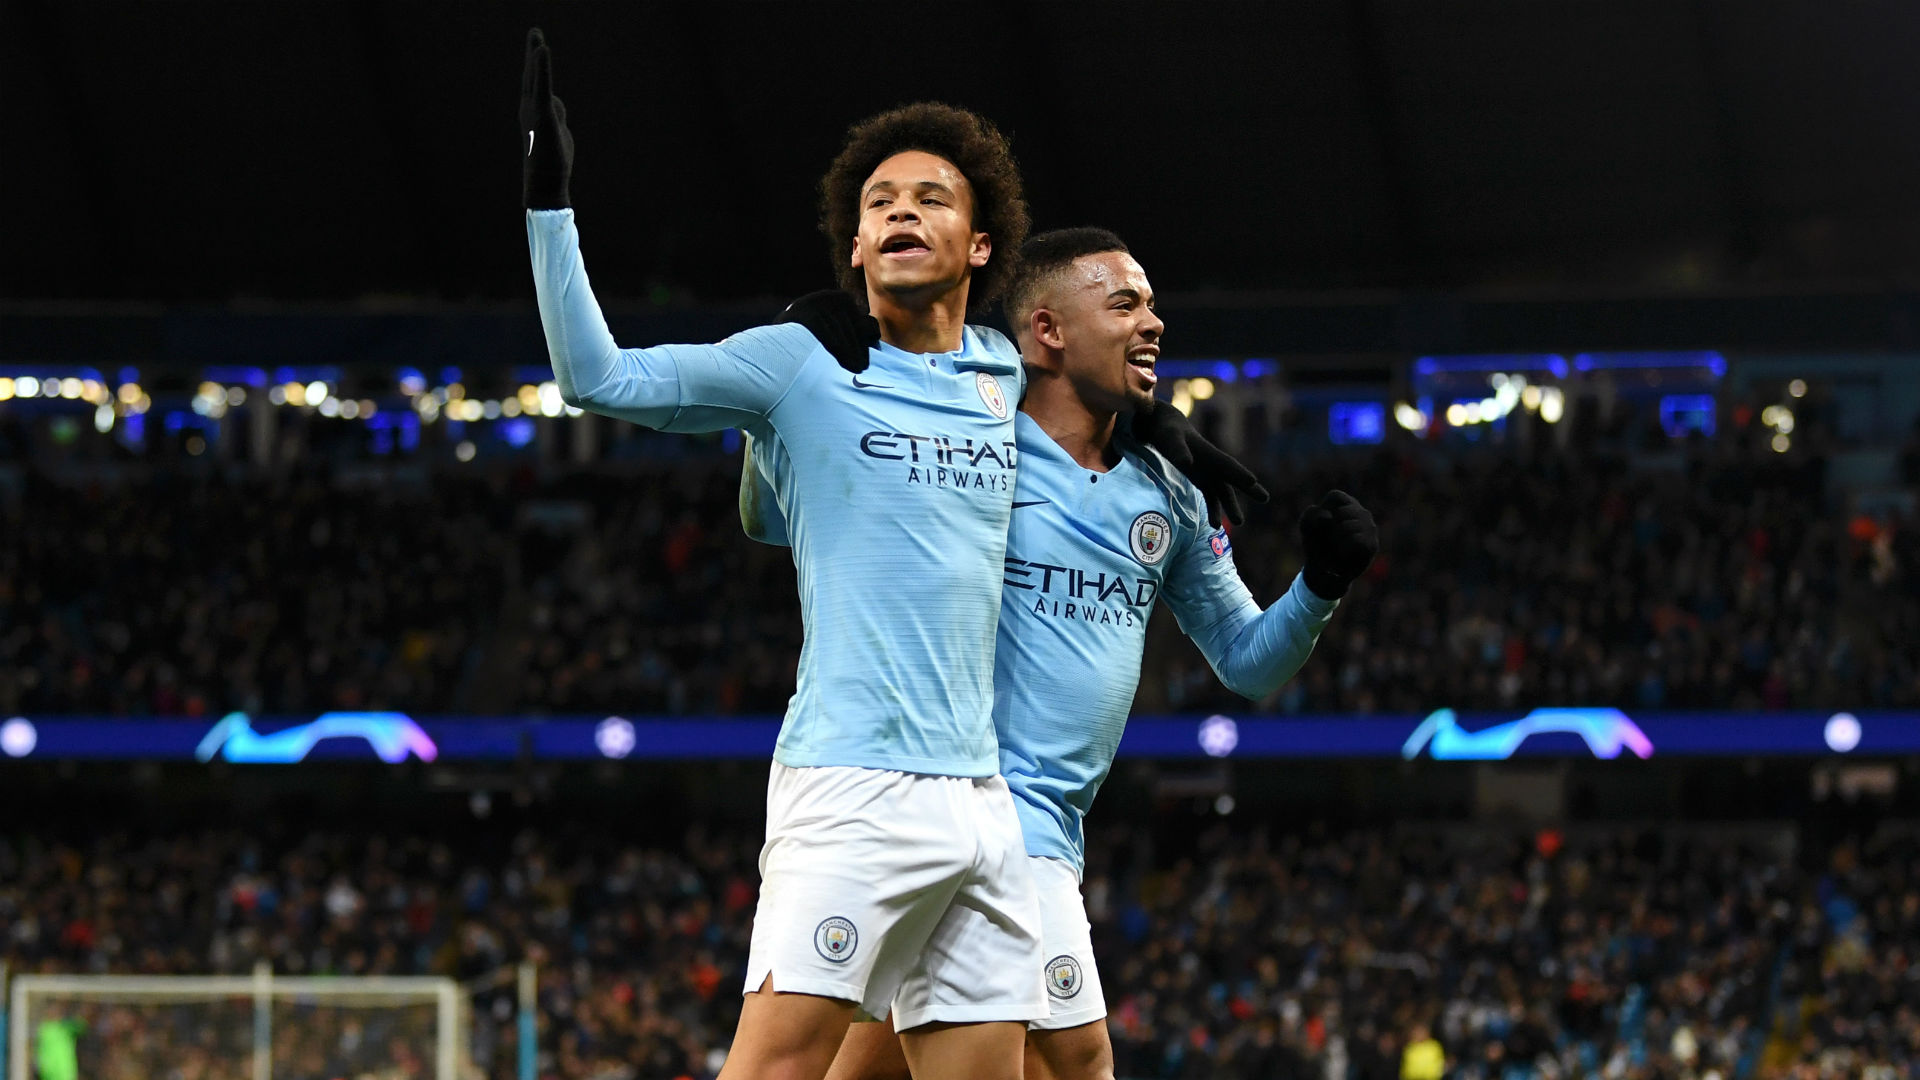 Practice pays off: Leroy Sane delighted with free-kick